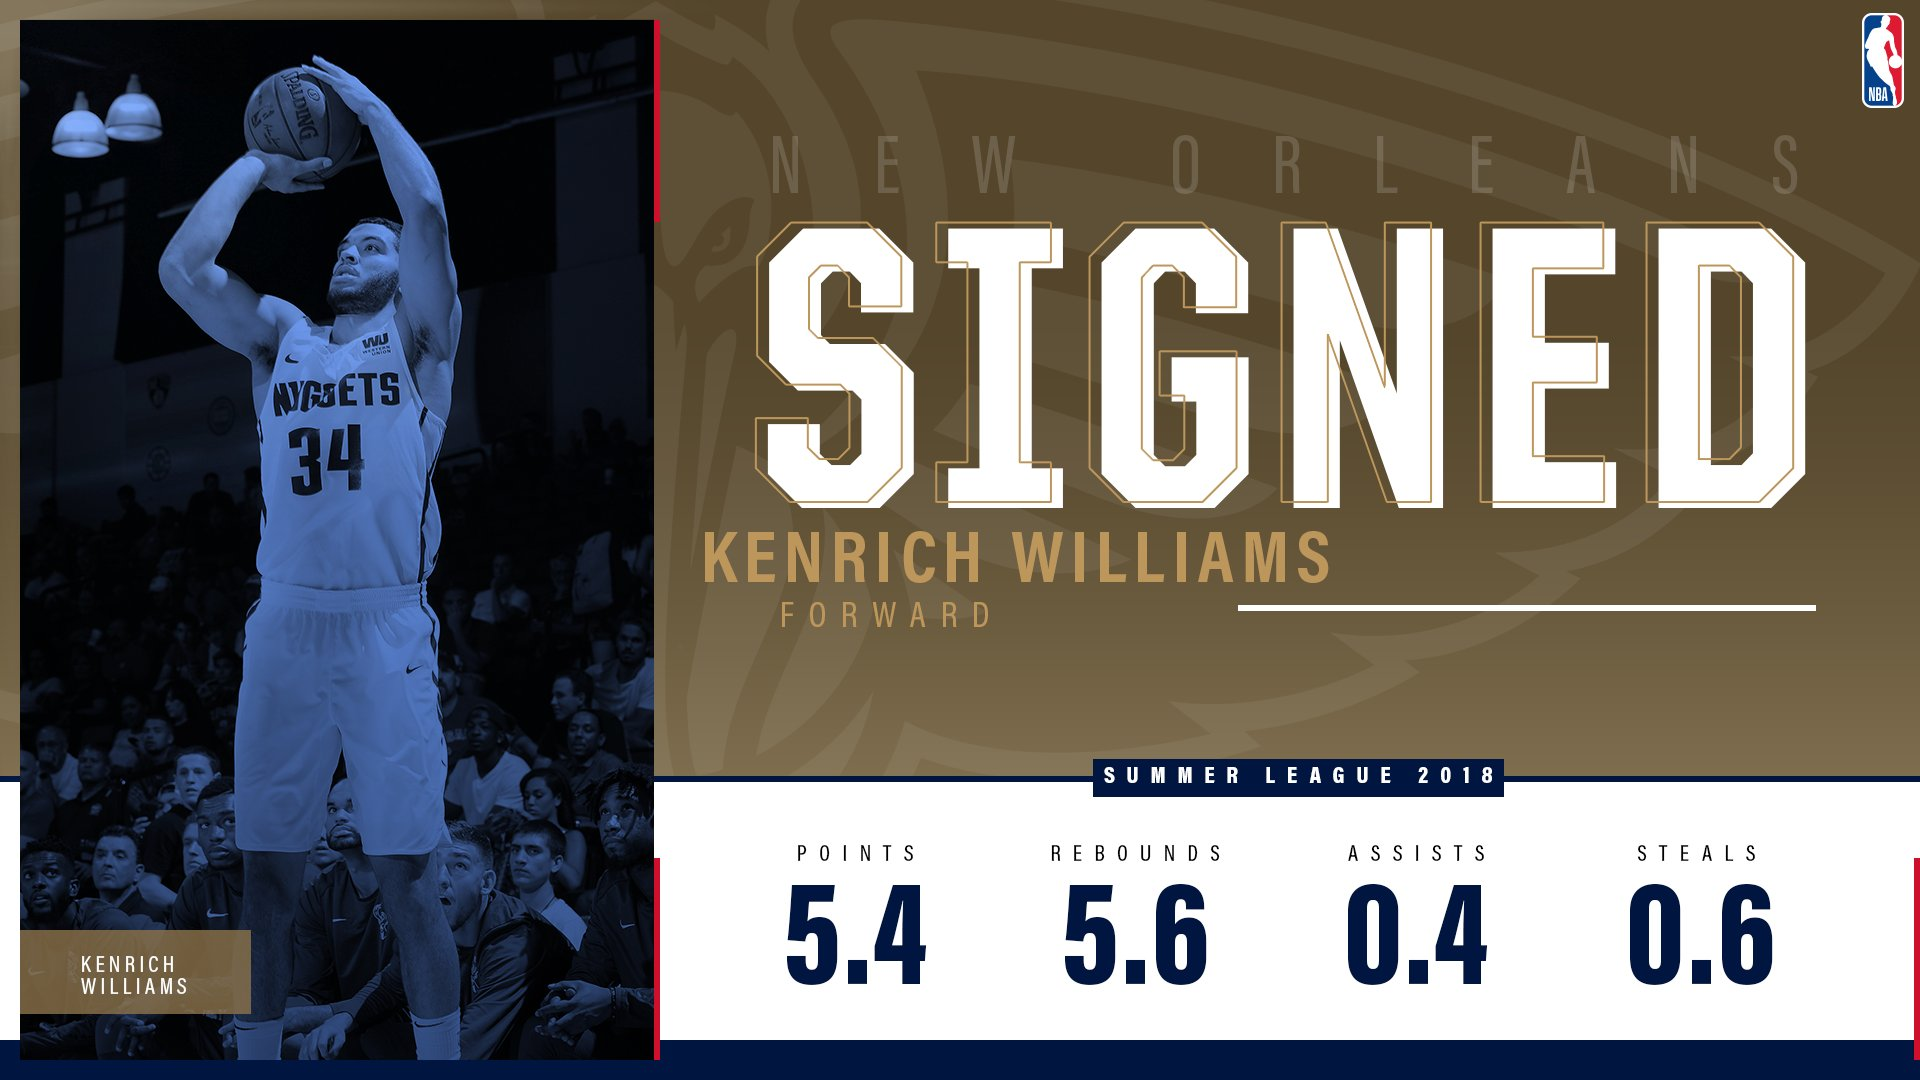 Welcome to New Orleans @williamskenrich! #Pelicans   INFO: https://t.co/4bHiil4DkE https://t.co/1ps8M49tVc